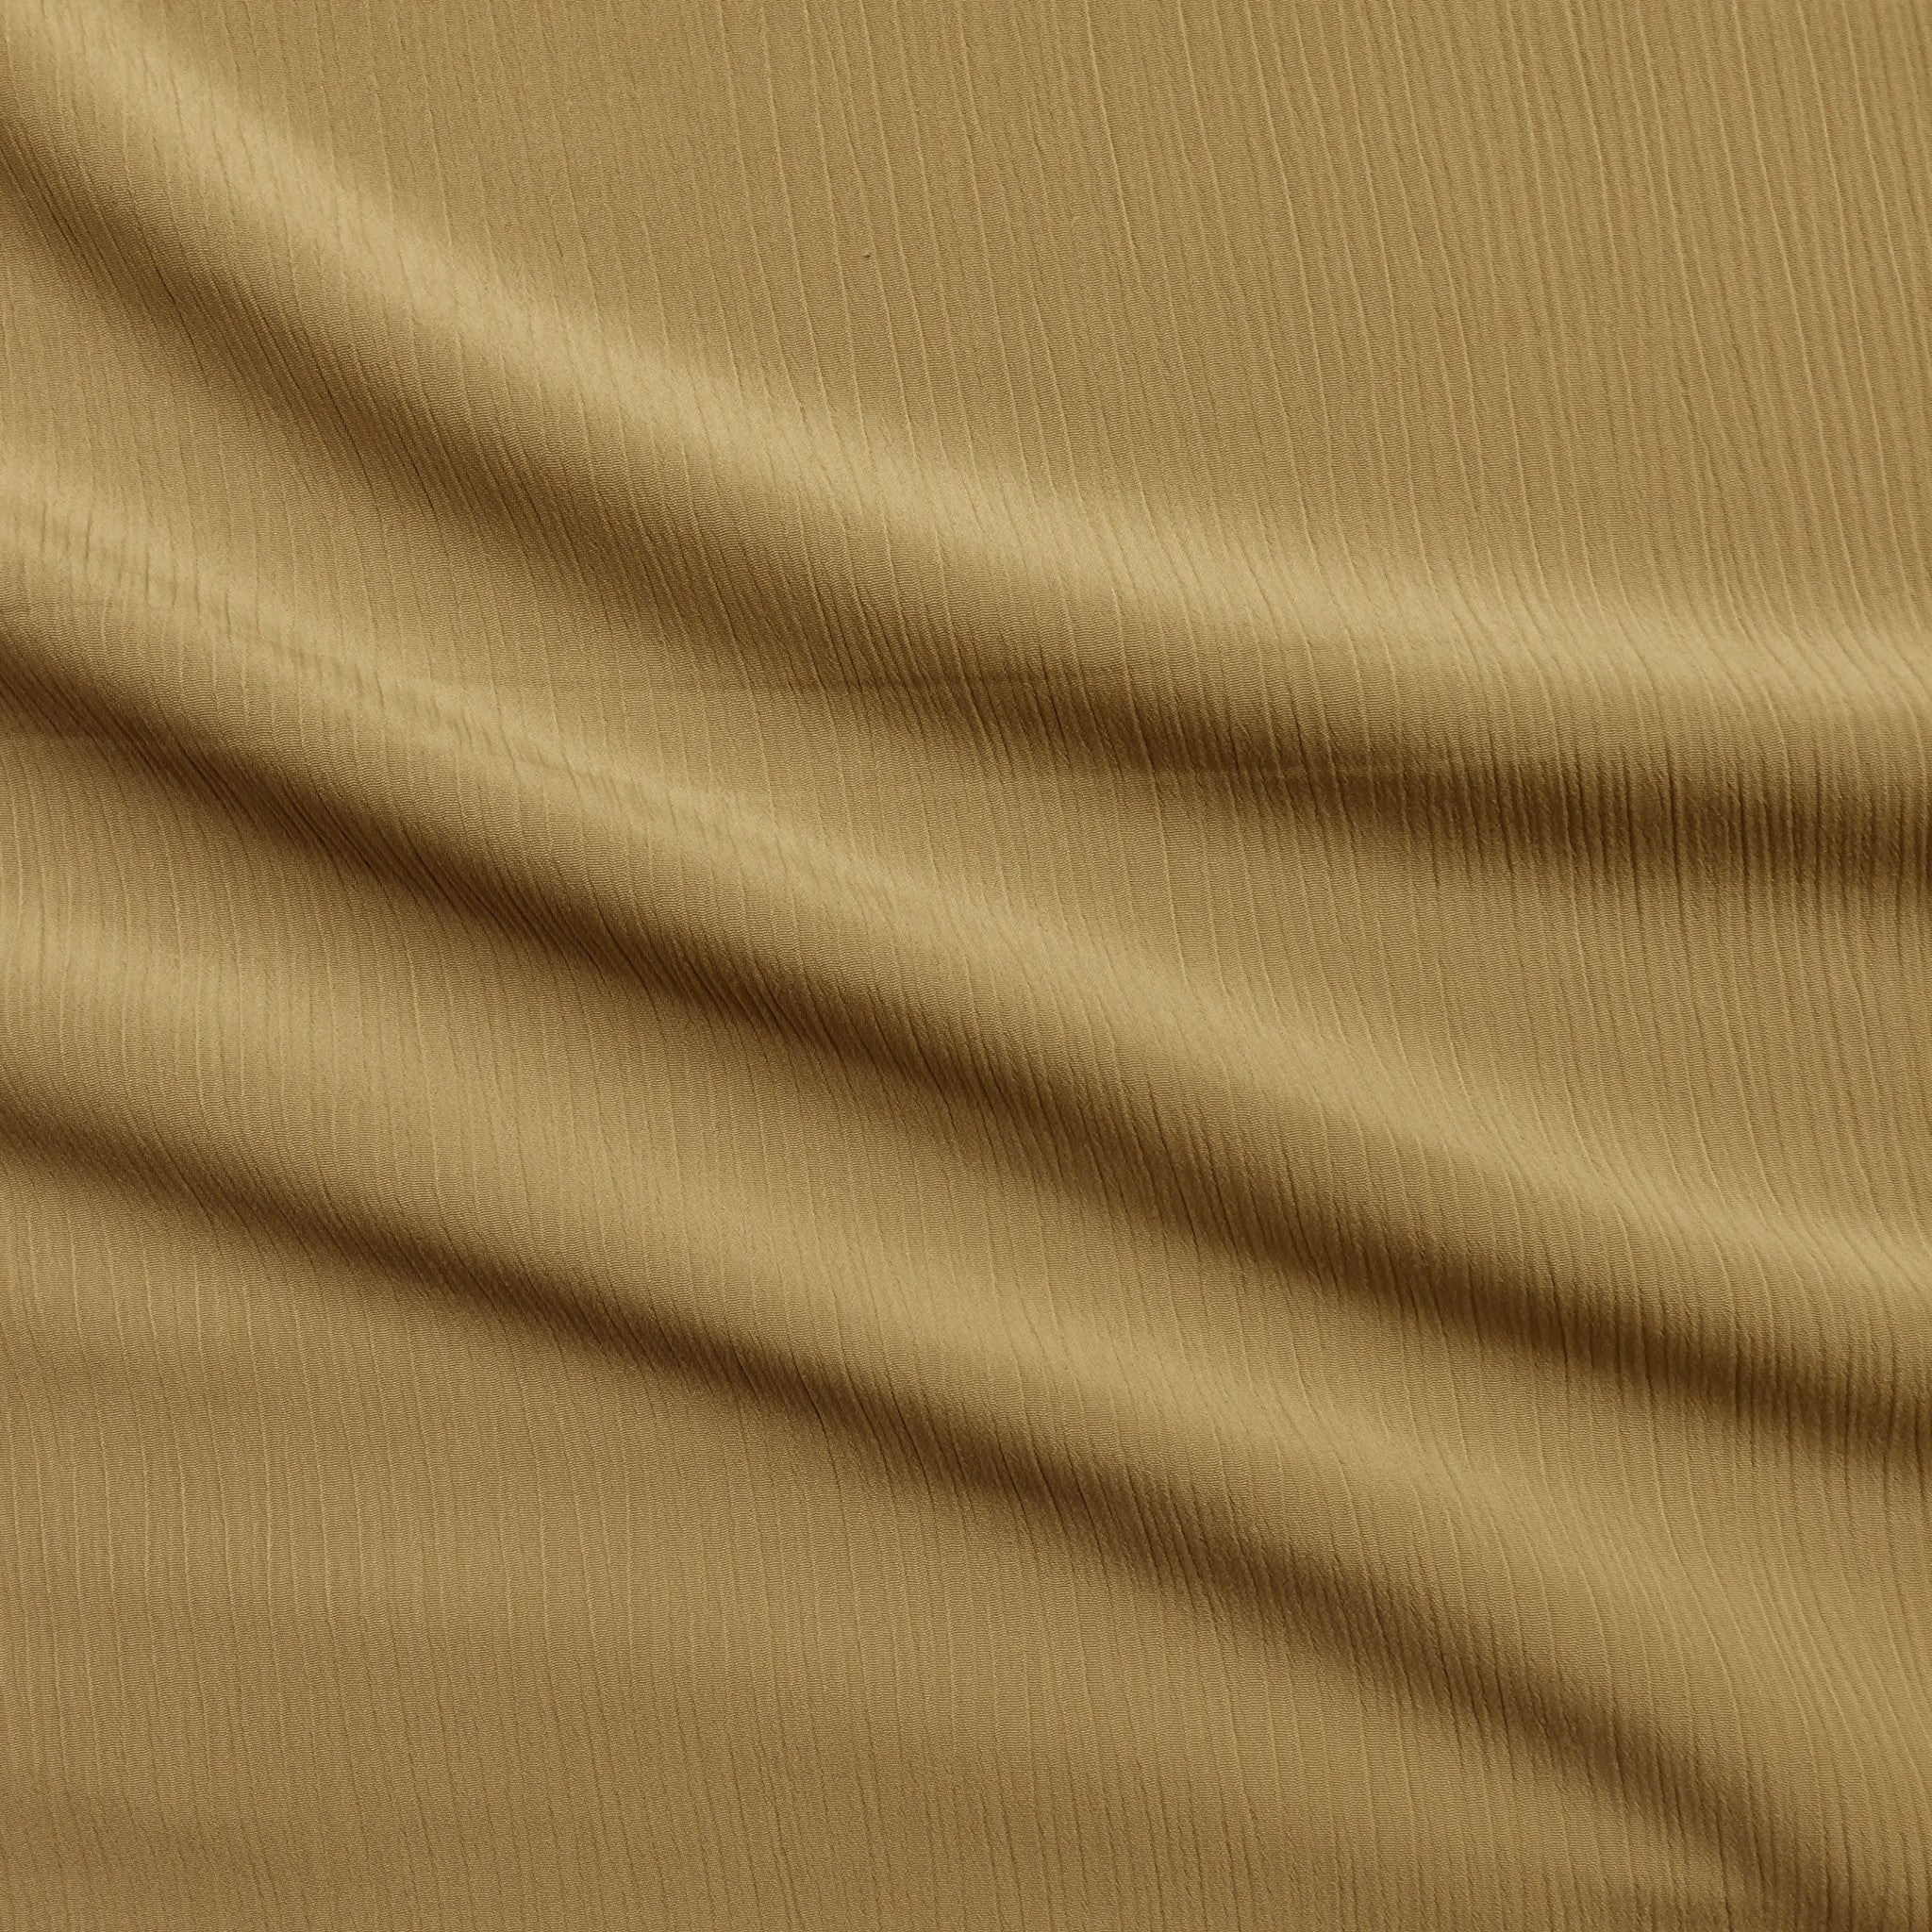 """Crinkle Polyester Fabric $3.99/yard 60"""" Wide - Fabric"""